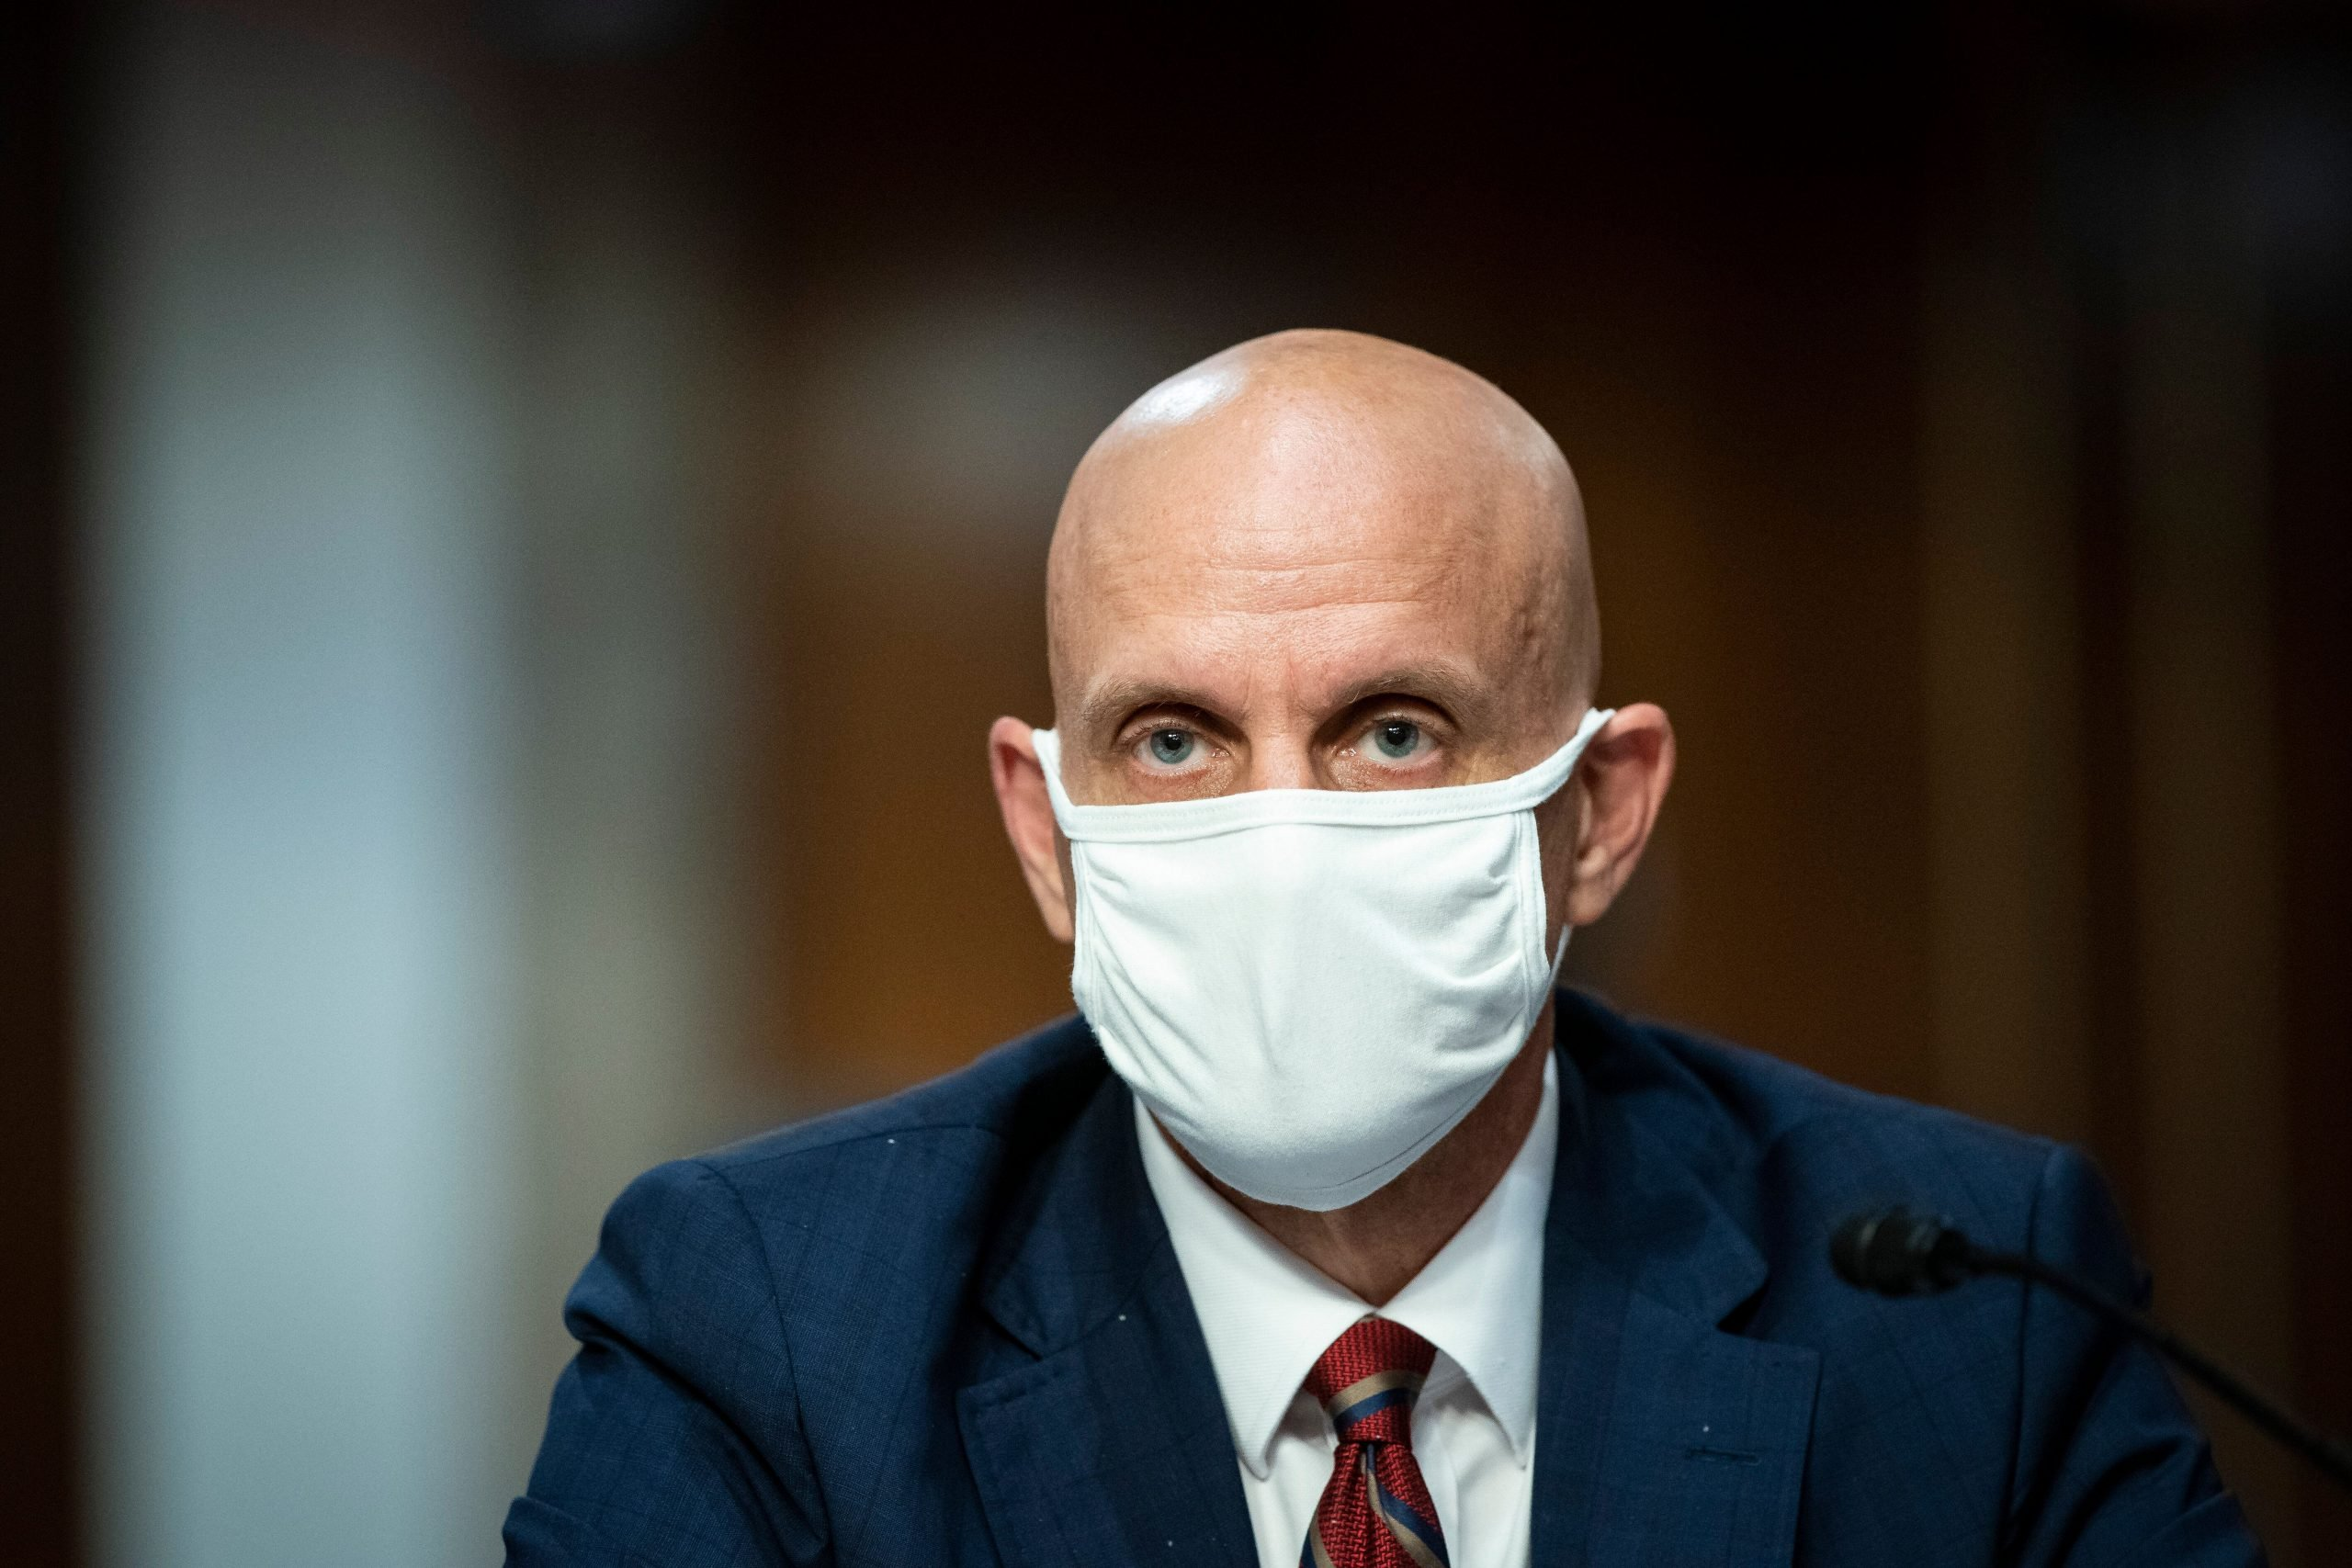 Dr. Stephen Hahn wears a face mask during a Senate hearing in Washington on June 30.